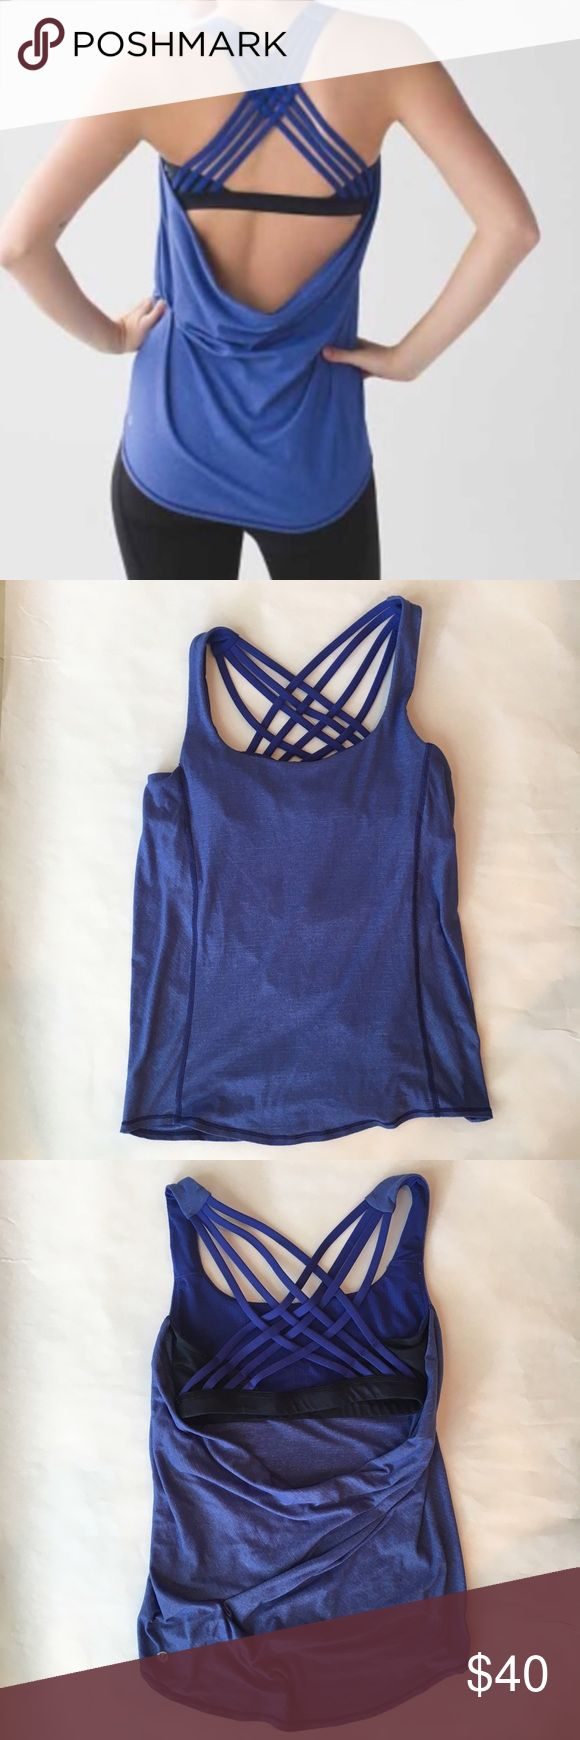 Lululemon Wild Tank, strappy and drapes in back Wild Tank style sold out on lululemon.com Beautiful heathered blue top drapes in back to show built-in bra in black and blue camouflage pattern Size dot in left cup-insert pocket EUC lululemon athletica Tops